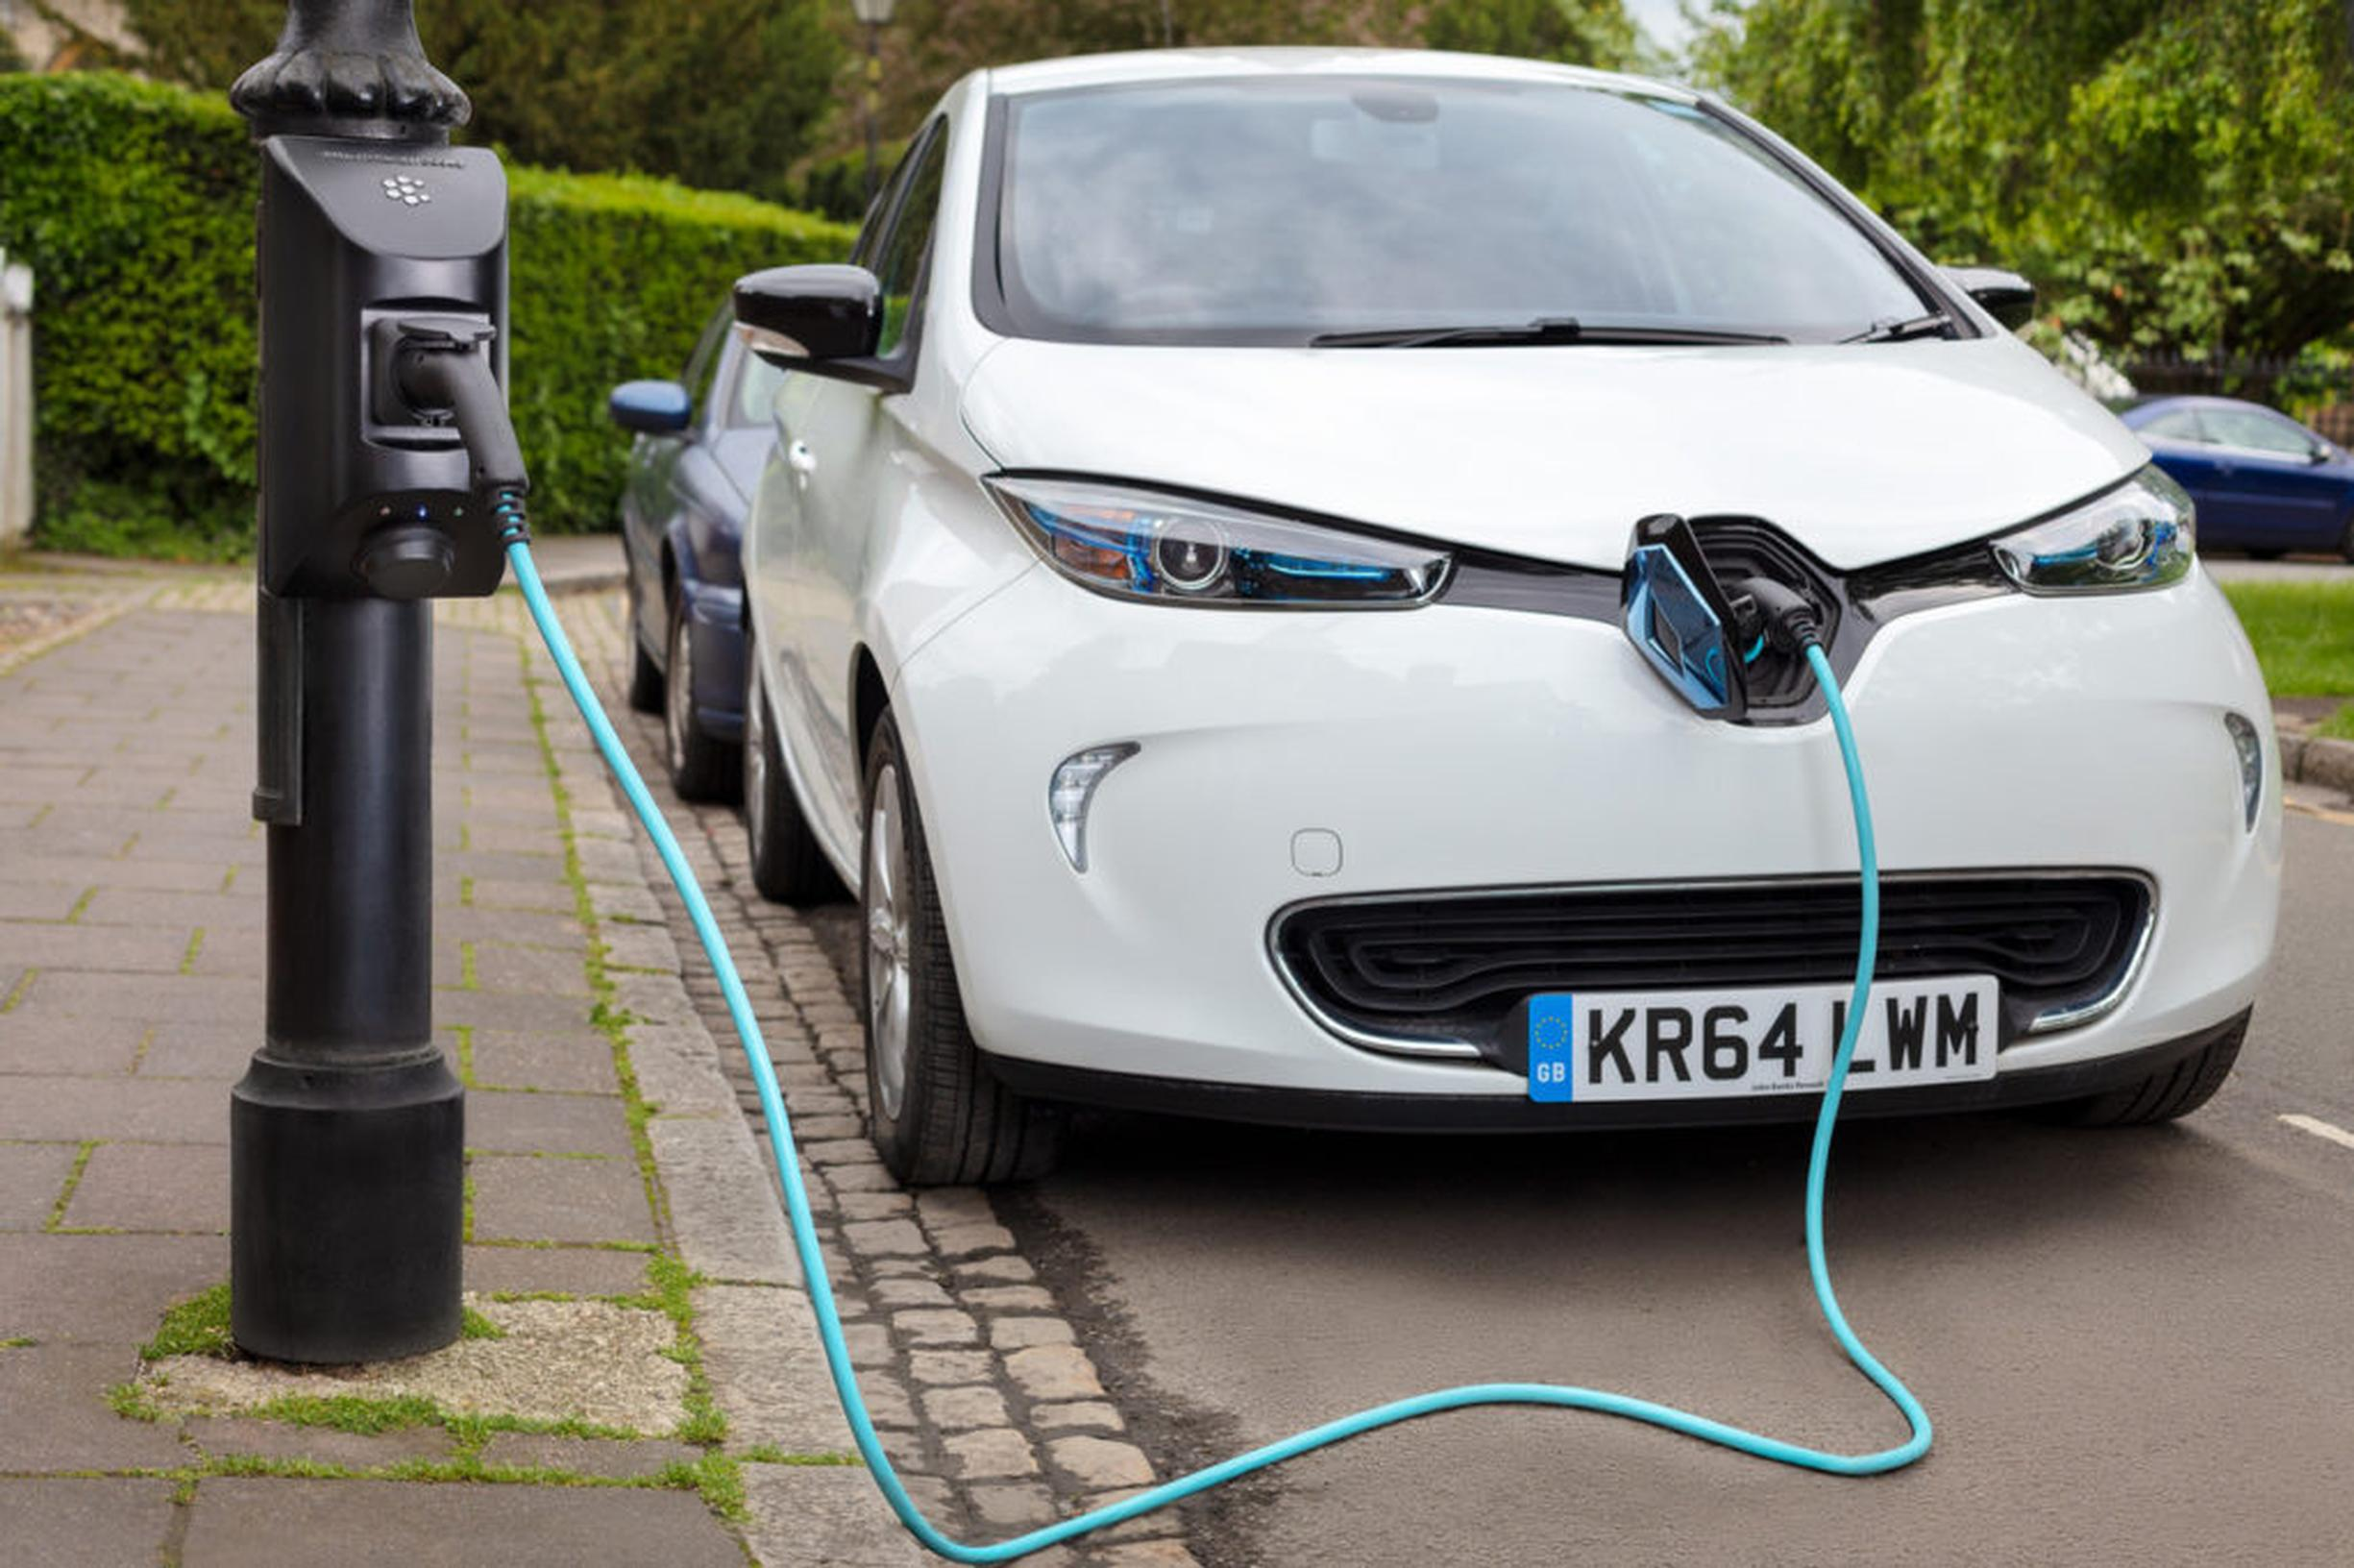 Government doubles funding for on-street electric car charging